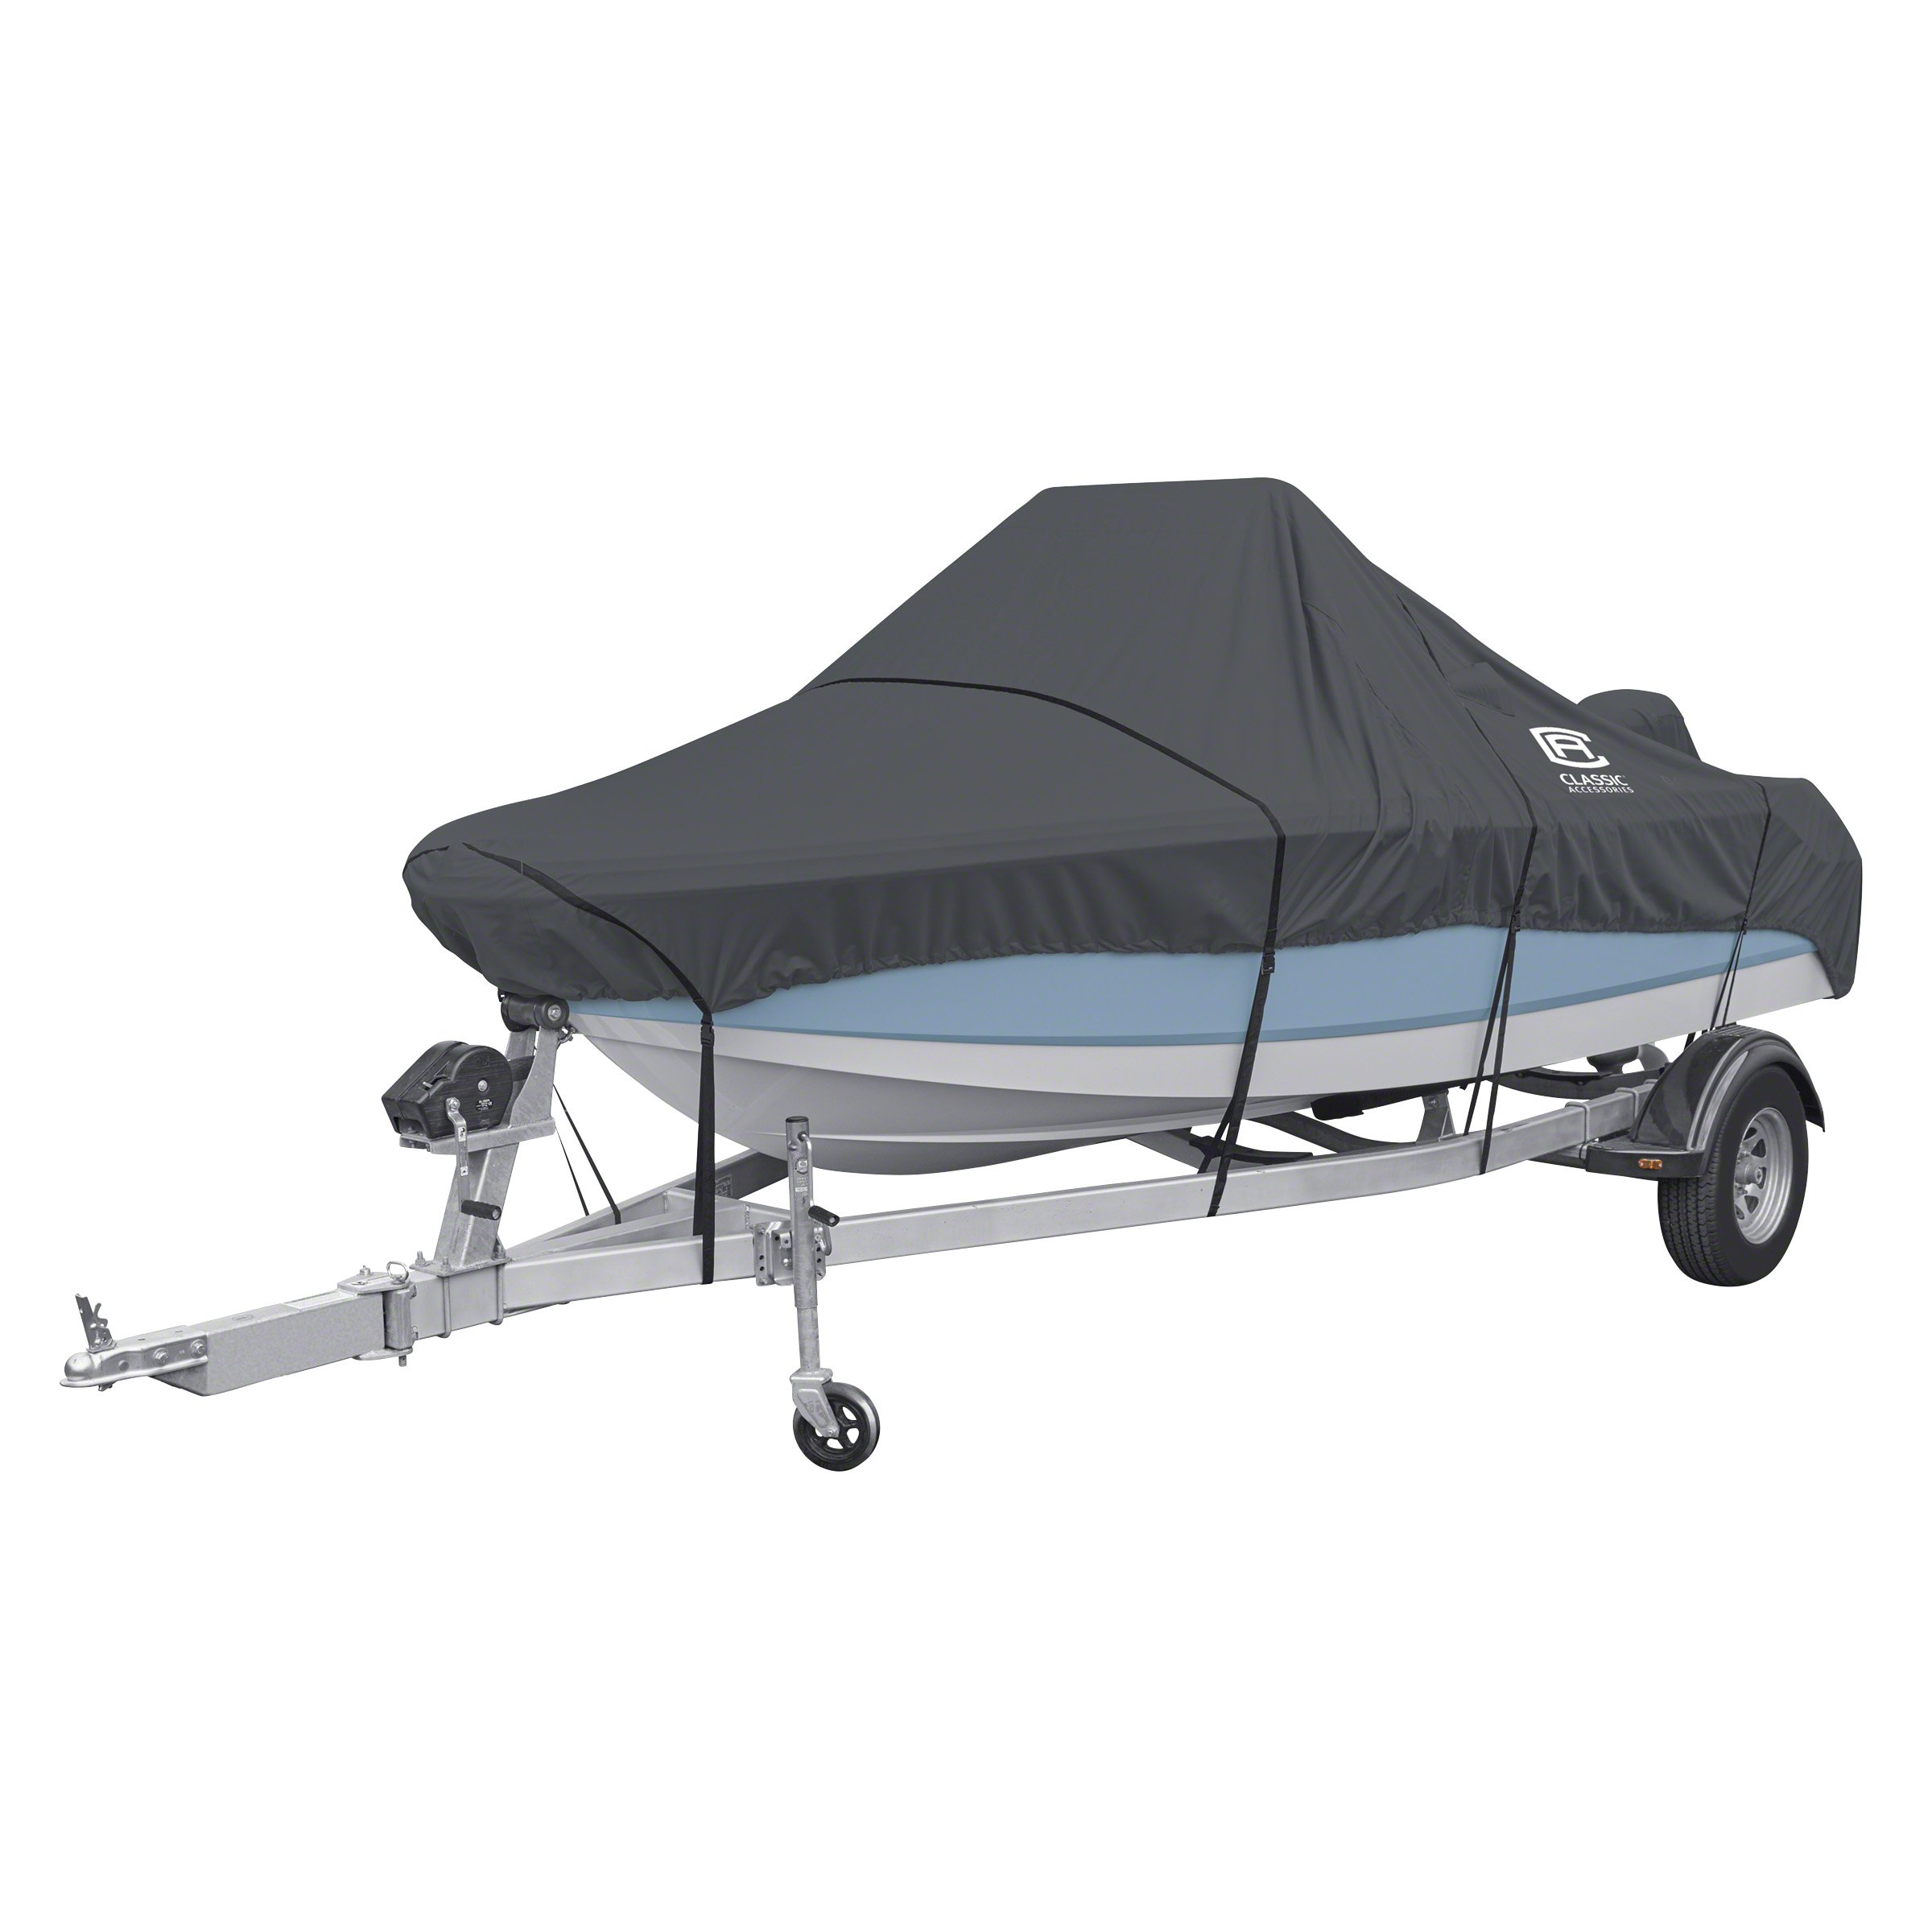 Classic Accessories StormPro Heavy Duty Boat Cover For Center Console Boats, Fits 16-18.5' Long, up to 98'' Wide